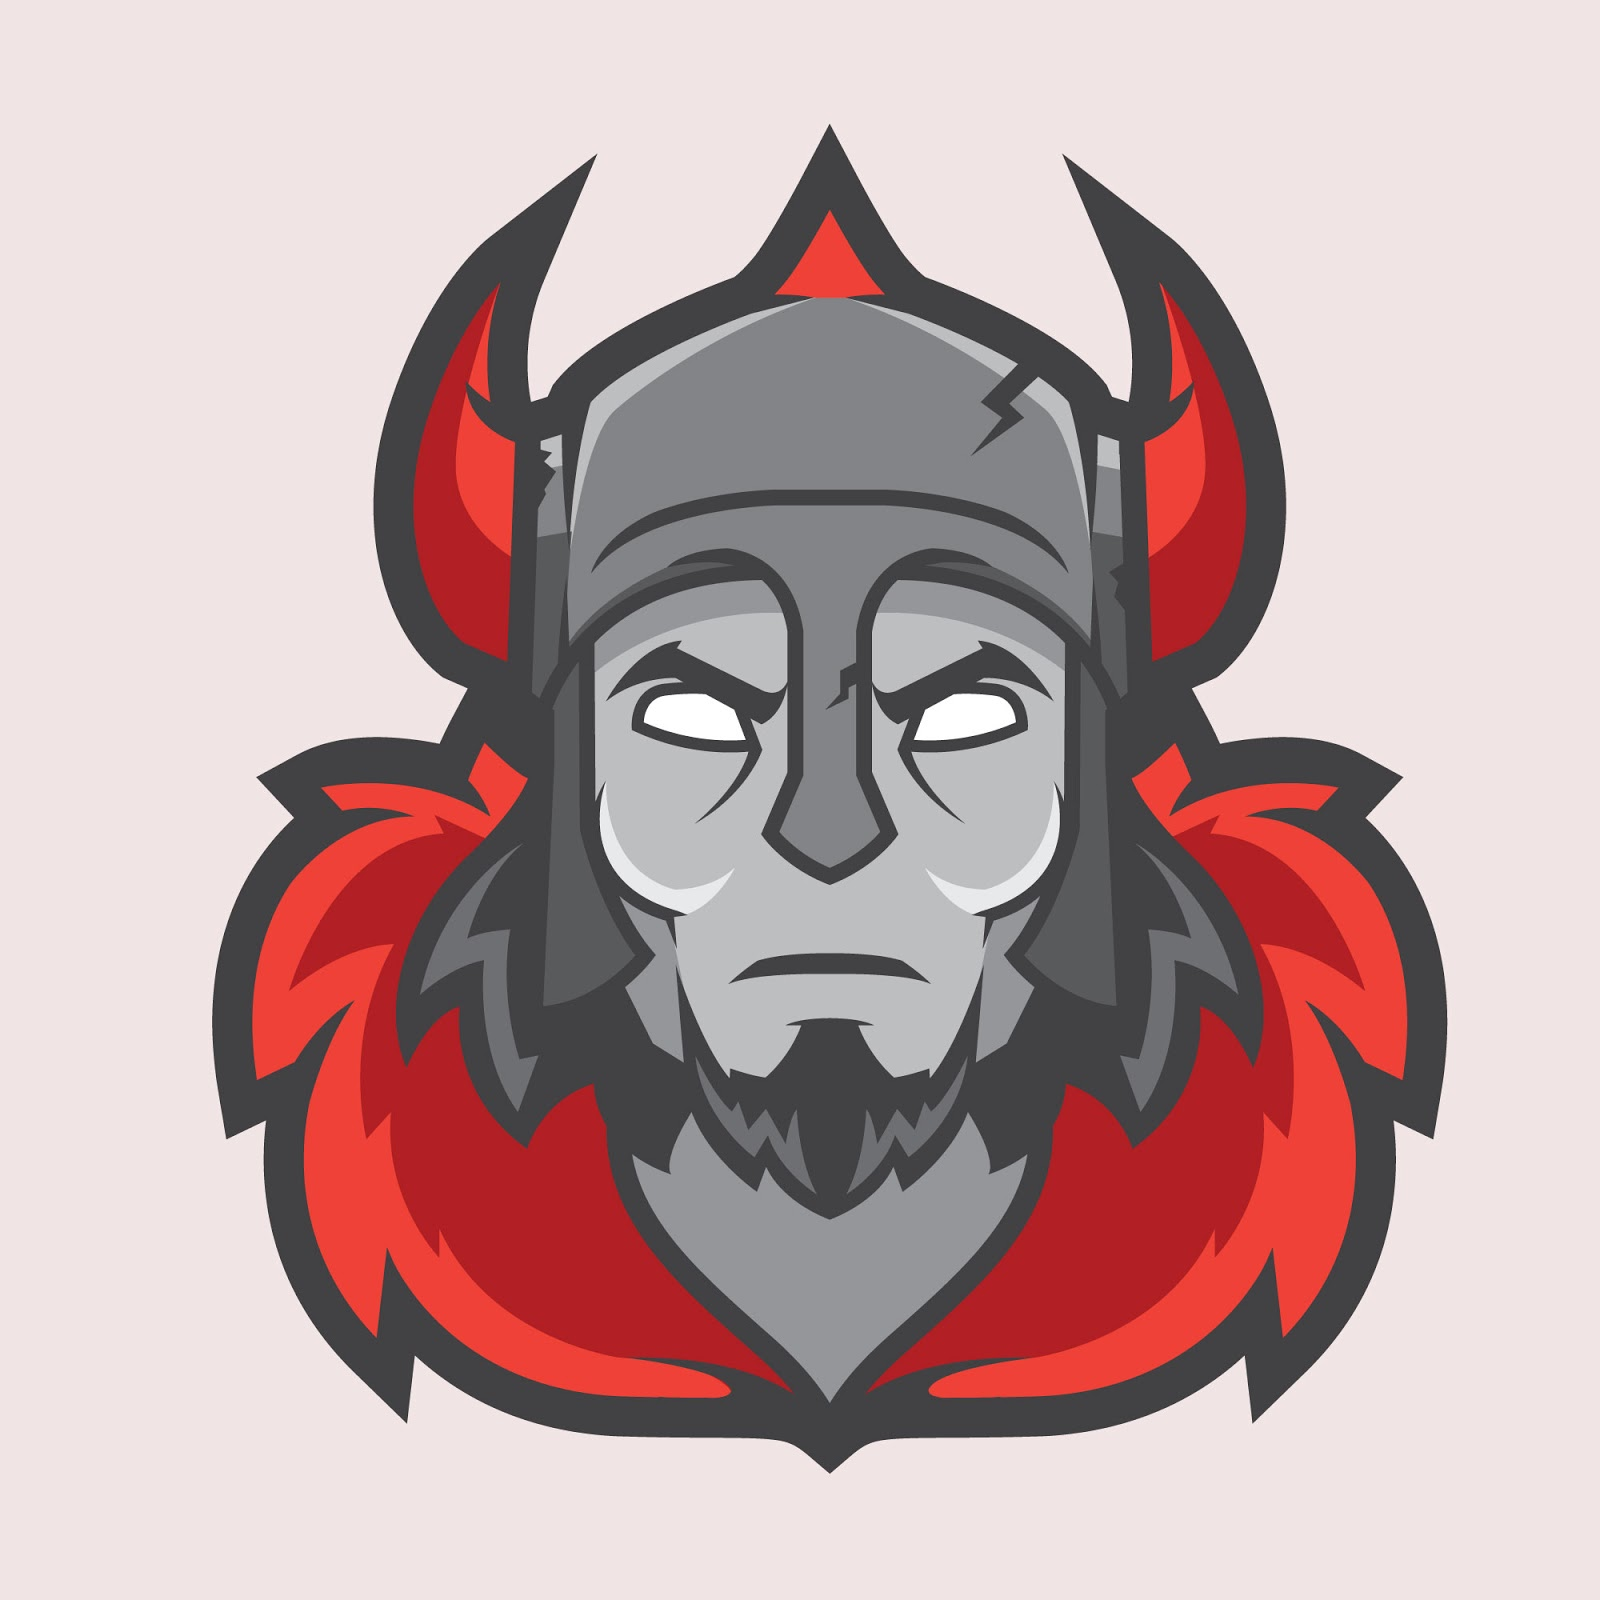 Warrior Mascot Illustration Free Download Vector CDR, AI, EPS and PNG Formats